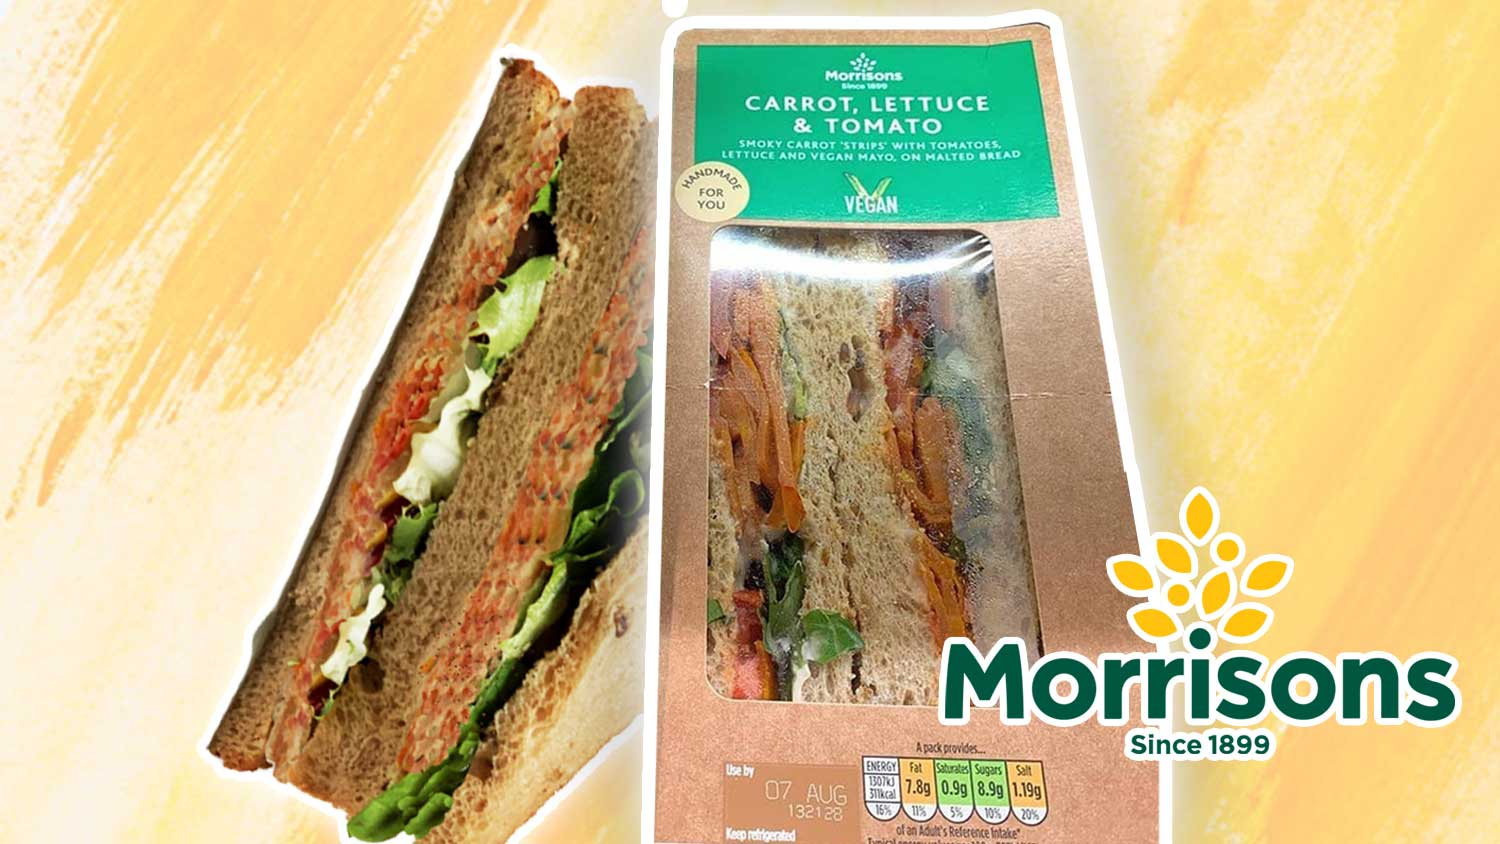 Vegan Bacon BLT Sandwiches Just Launched at Morrisons